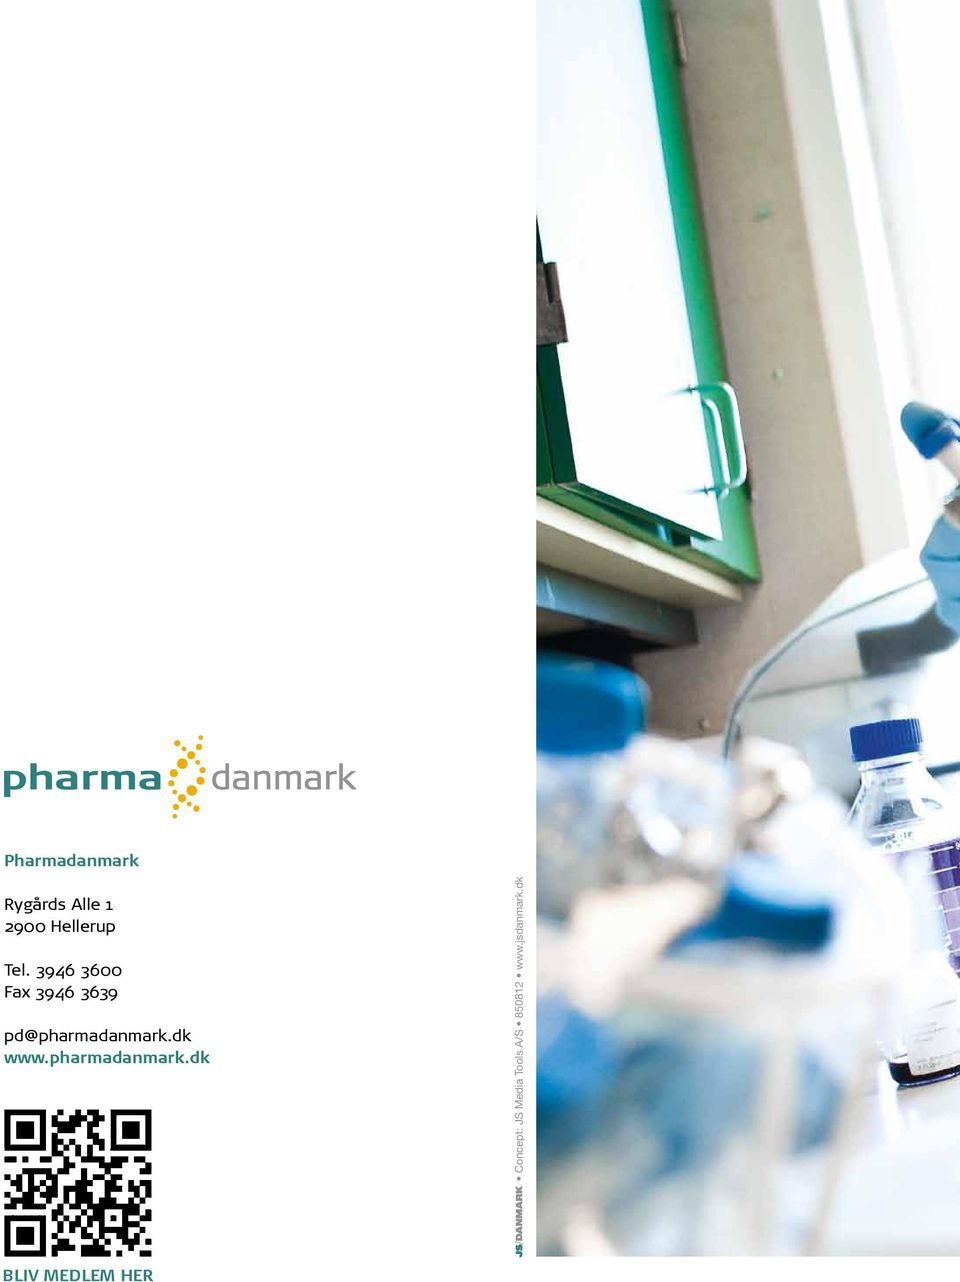 pd@pharmadanmark.